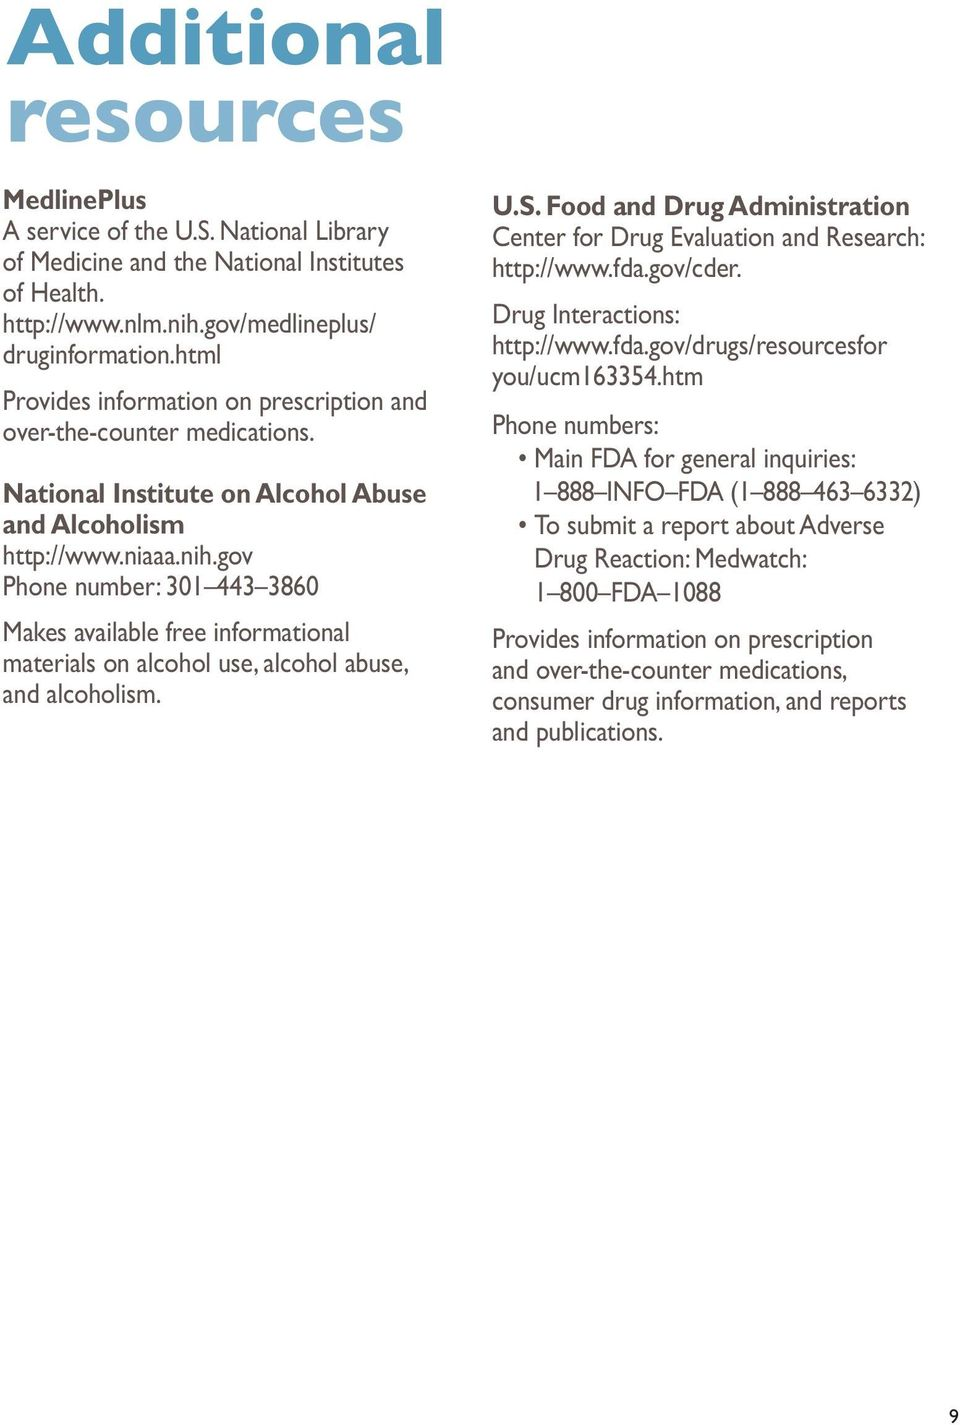 Drug Interactions: http://www.fda.gov/drugs/resourcesfor you/ucm163354.